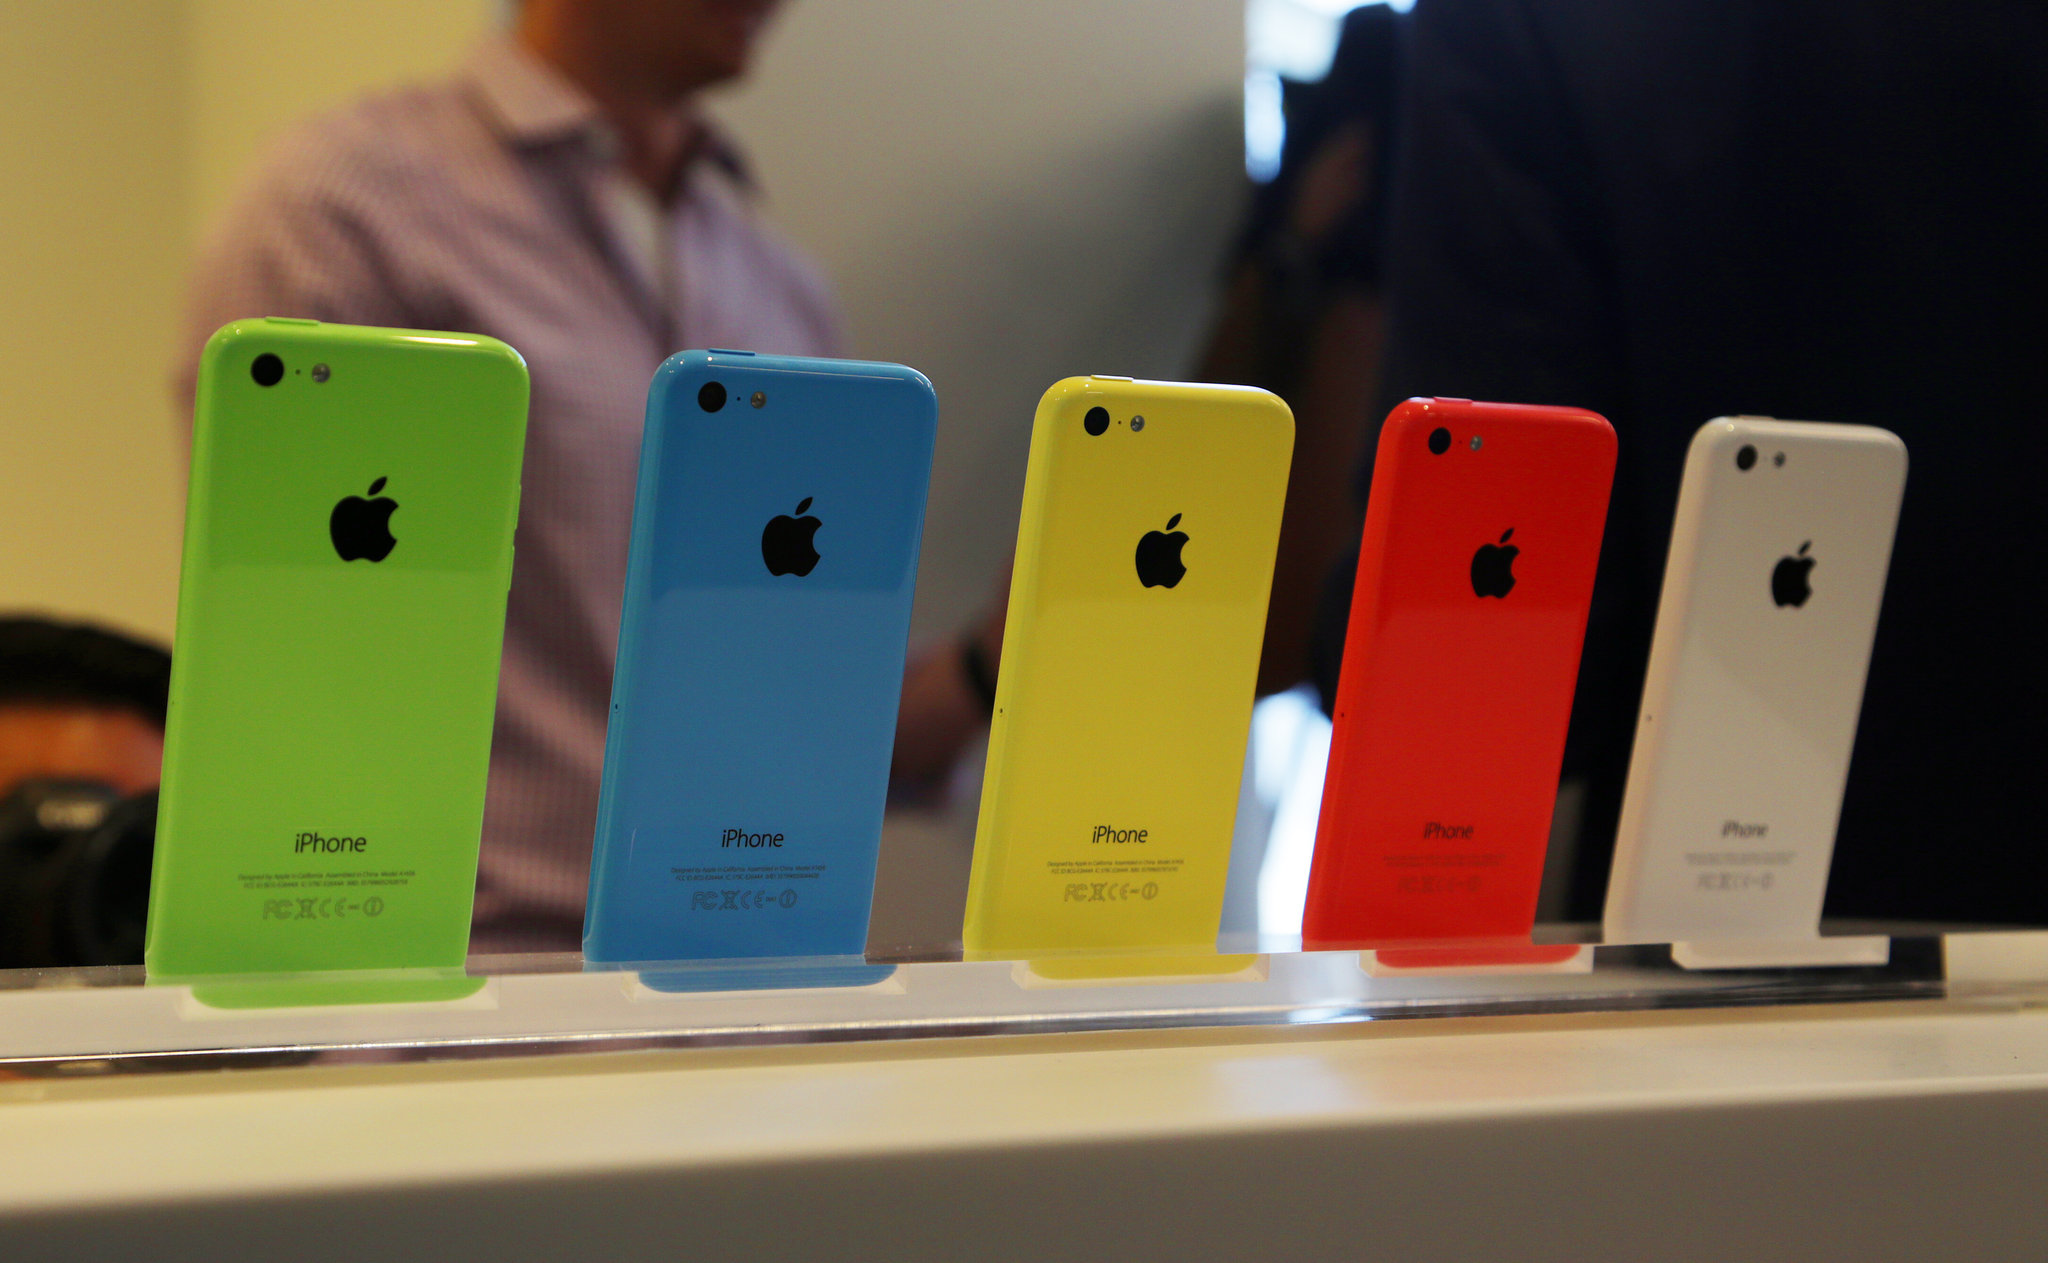 The new iPhone 5s and 5c: Prices, features and review Iphone 5c